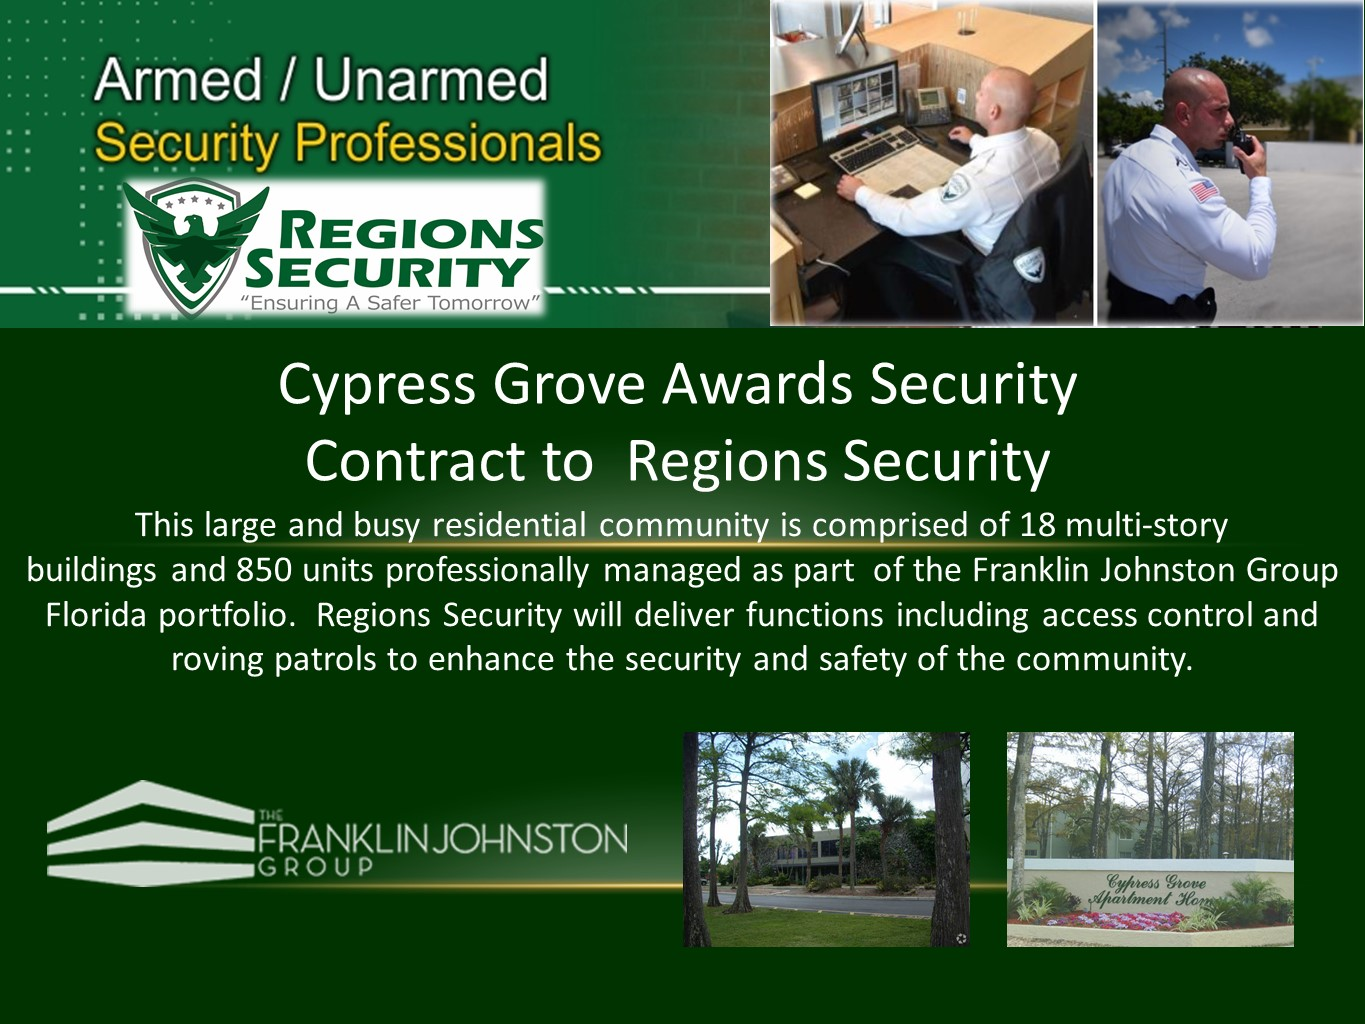 Access Control Systems – Regions Security Services